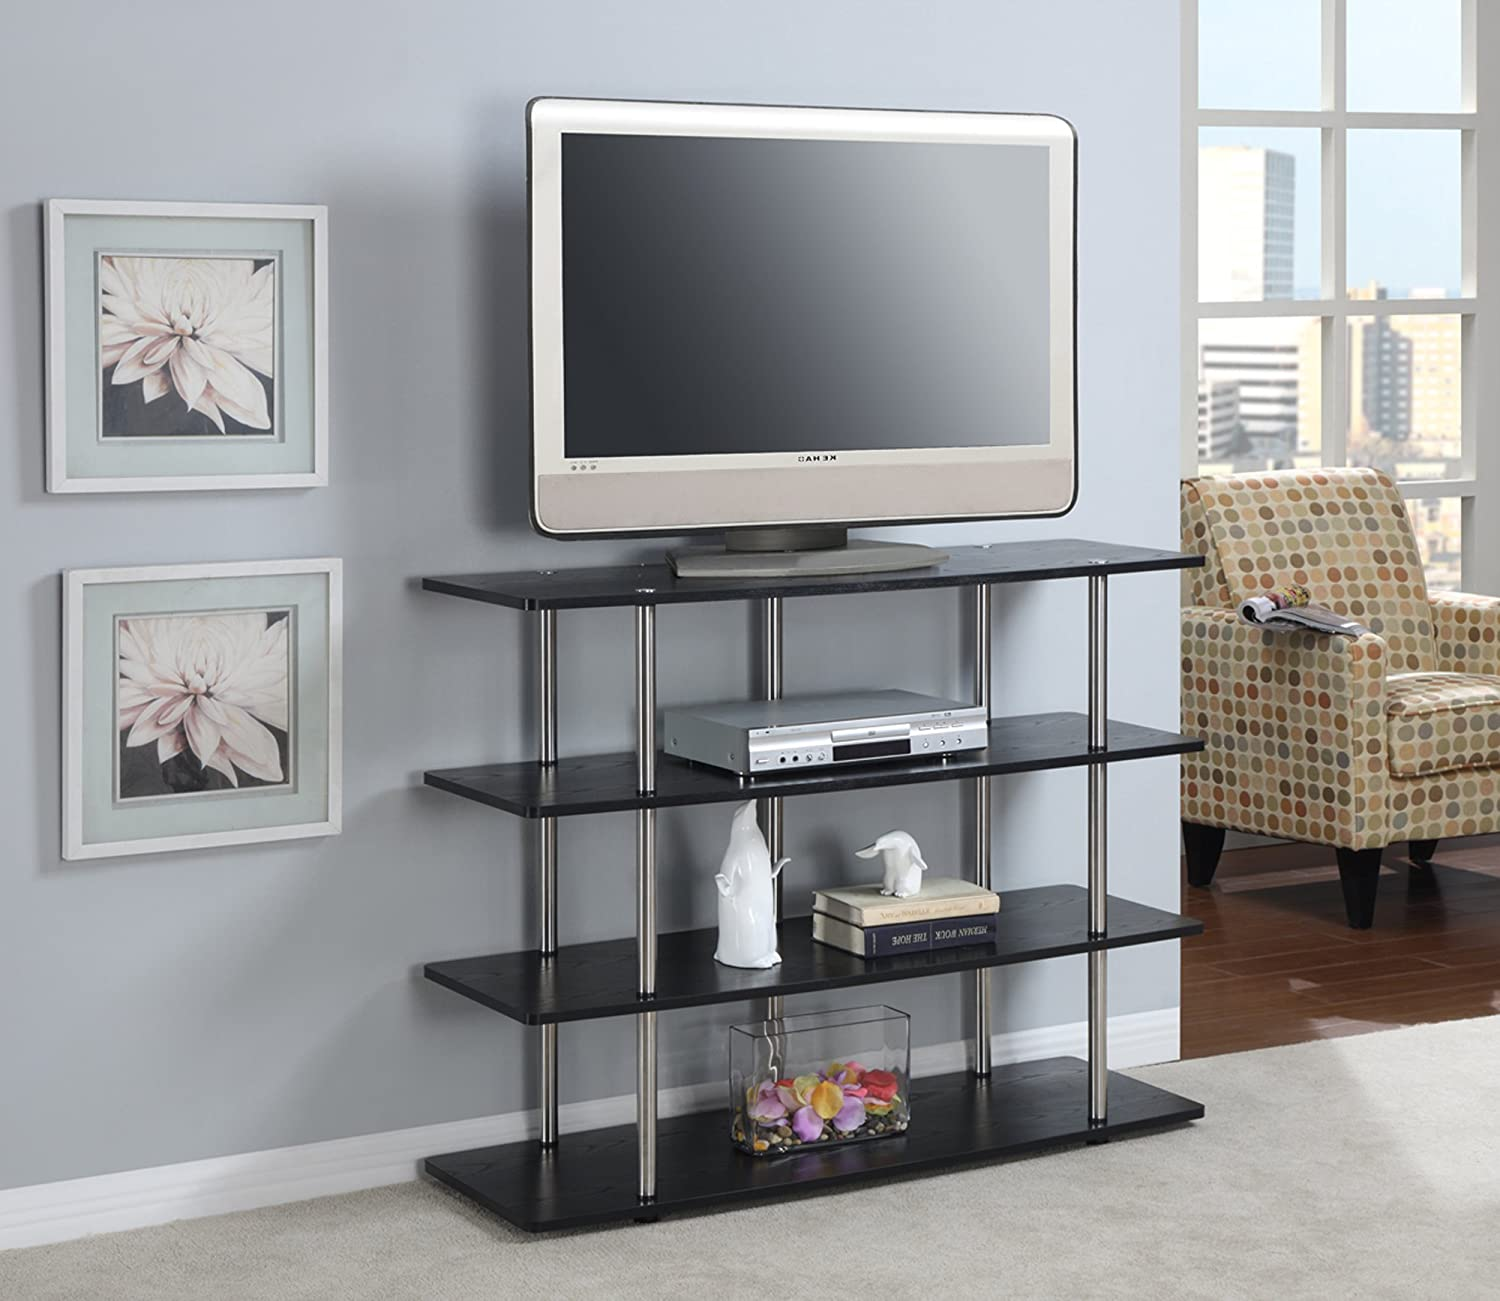 Ordinaire Amazon.com: Convenience Concepts Designs2Go Highboy TV Stand, X Large,  Black: Kitchen U0026 Dining